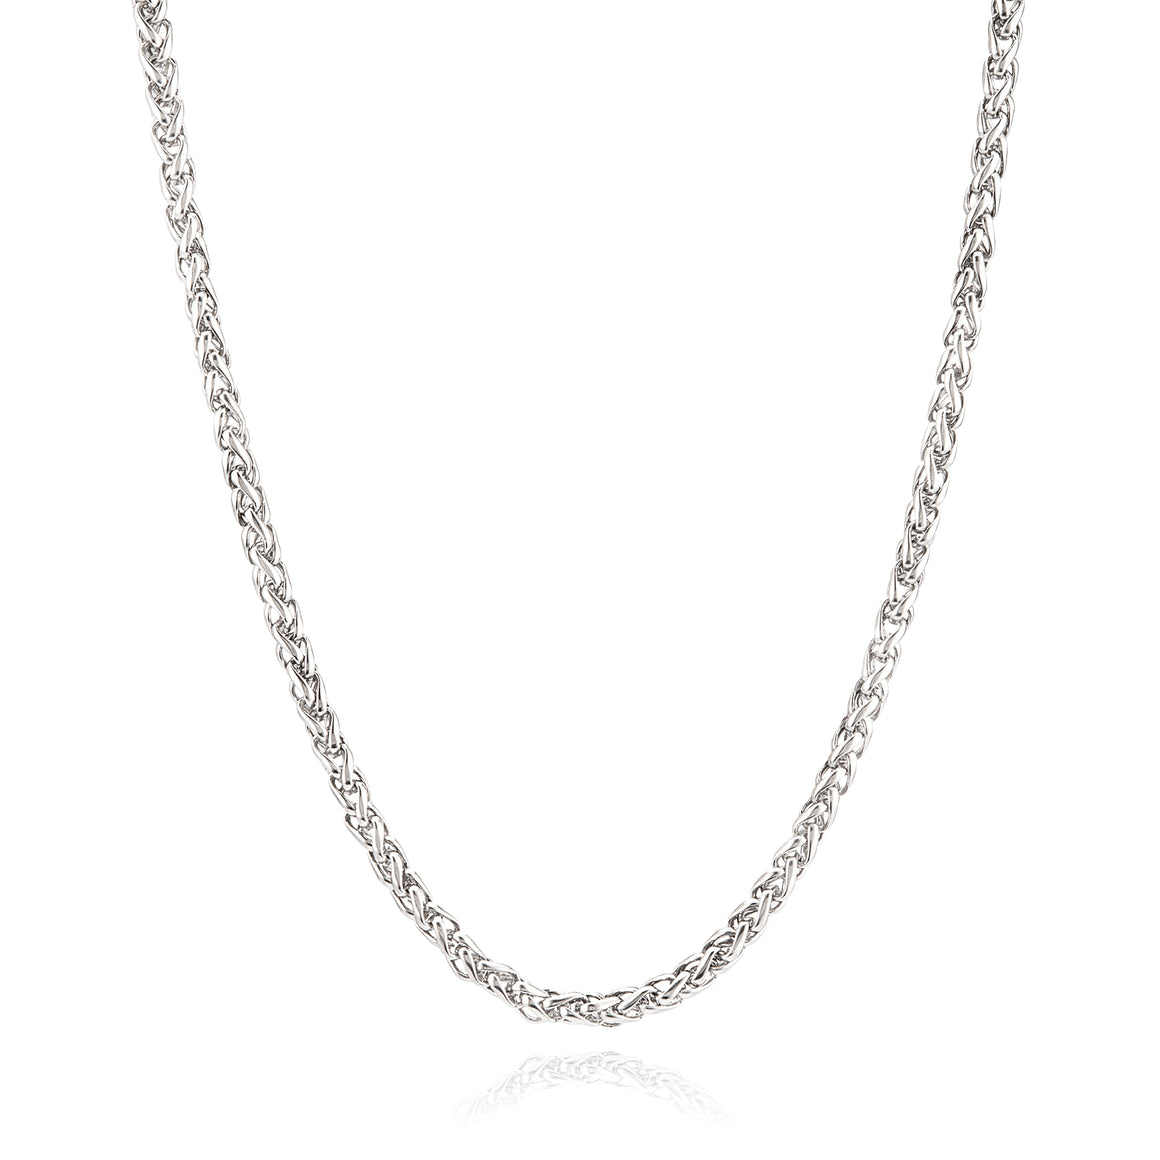 Crucible Men's Stainless Steel Polished Spiga Chain Necklace